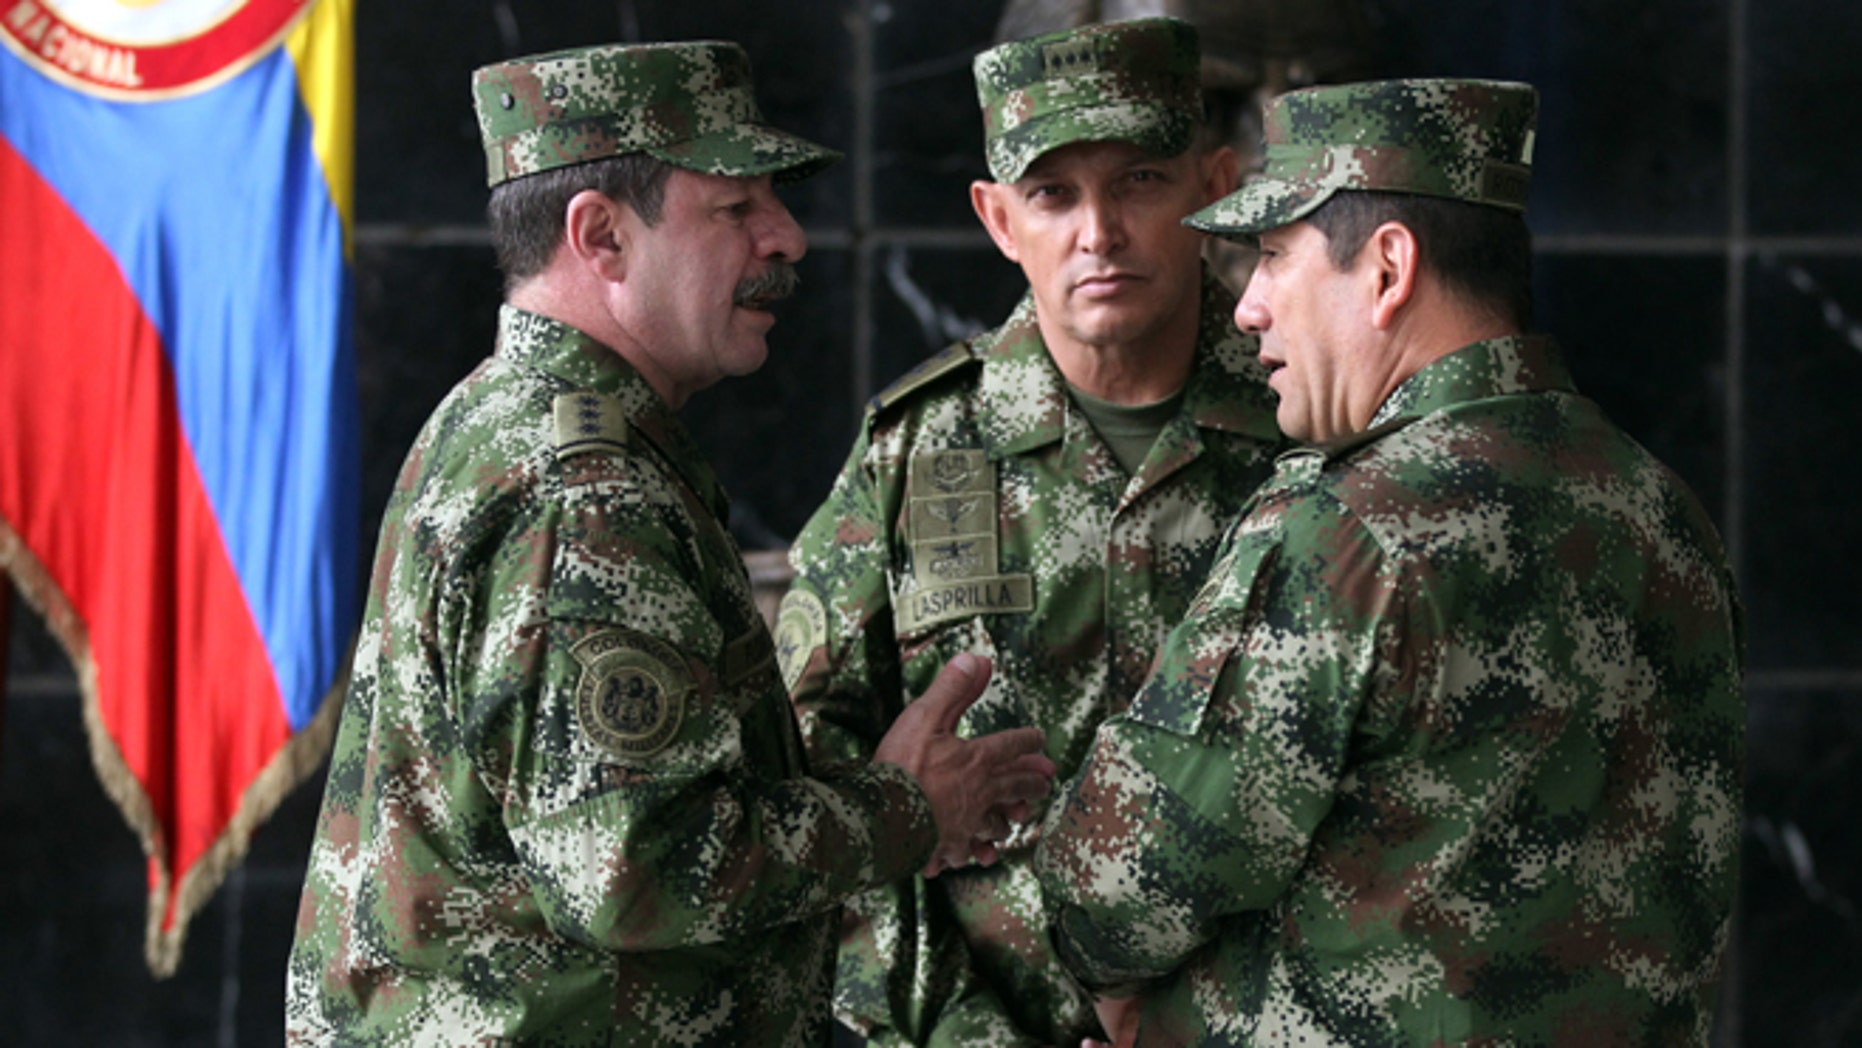 FILE - In this Feb. 18, 2014, file photo, the new Colombian armed forces commander Gen. Juan Pablo Rodríguez, right, talks to newly appointed chief of staff Gen. Javier Florez, left, and army commander Gen. Jaime Lasprilla, center, after a press conference where Defense Minister Juan Carlos Pinzon announced the firing of the fromer armed forces chief Gen. Leonardo Barrero in Bogotá, Colombia. Gen. Rodríguez and Gen. Lasprilla are among dozens of senior Colombian army officers implicated in the killing of 3,000 civilians falsely claimed to be rebels a decade ago have risen through the ranks and are escaping punishment for their roles in one of the worst atrocities committed in Latin America, Human Rights Watch said Wednesday, June 23, 2015. (AP Photo/Fernando Vergara, File)